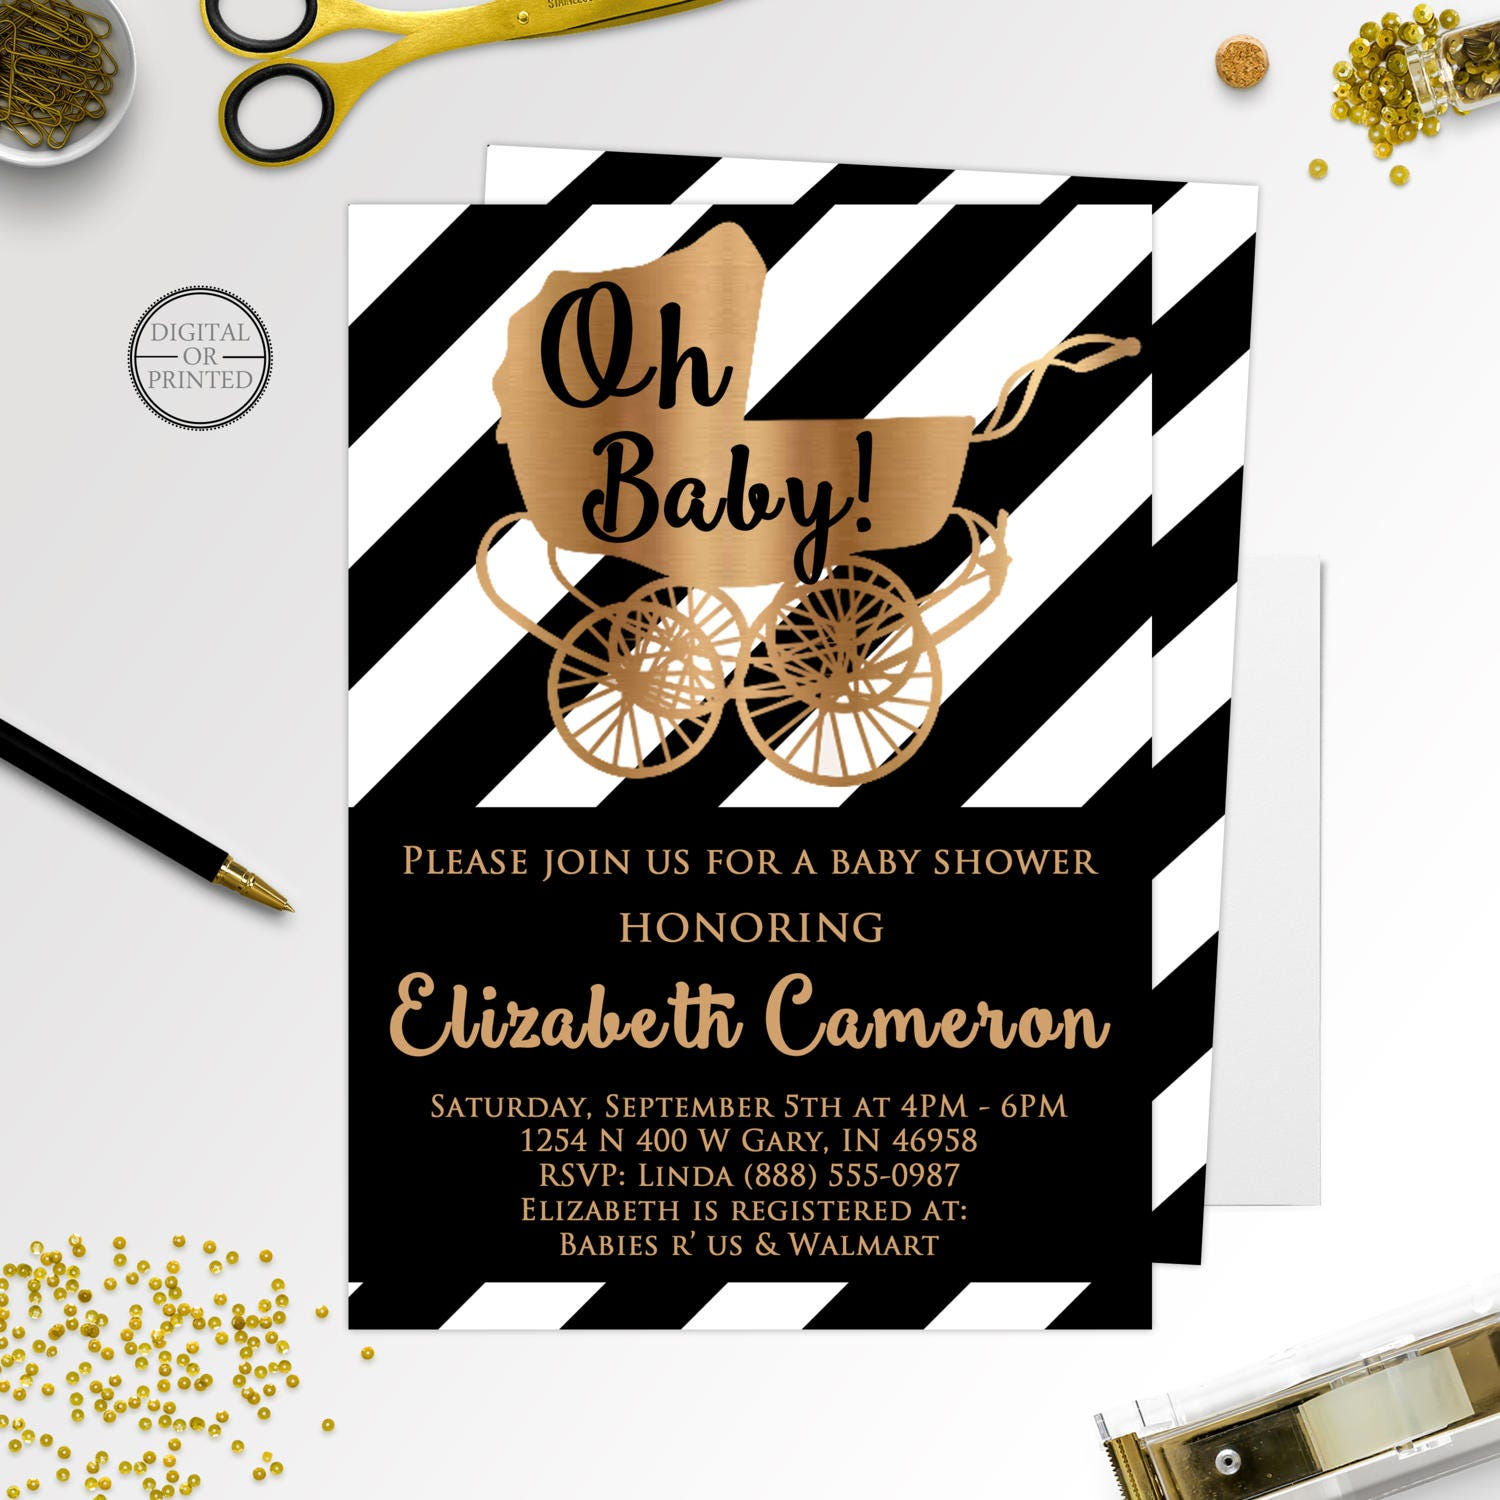 Black and White Baby Shower Invitations Black and Gold Baby